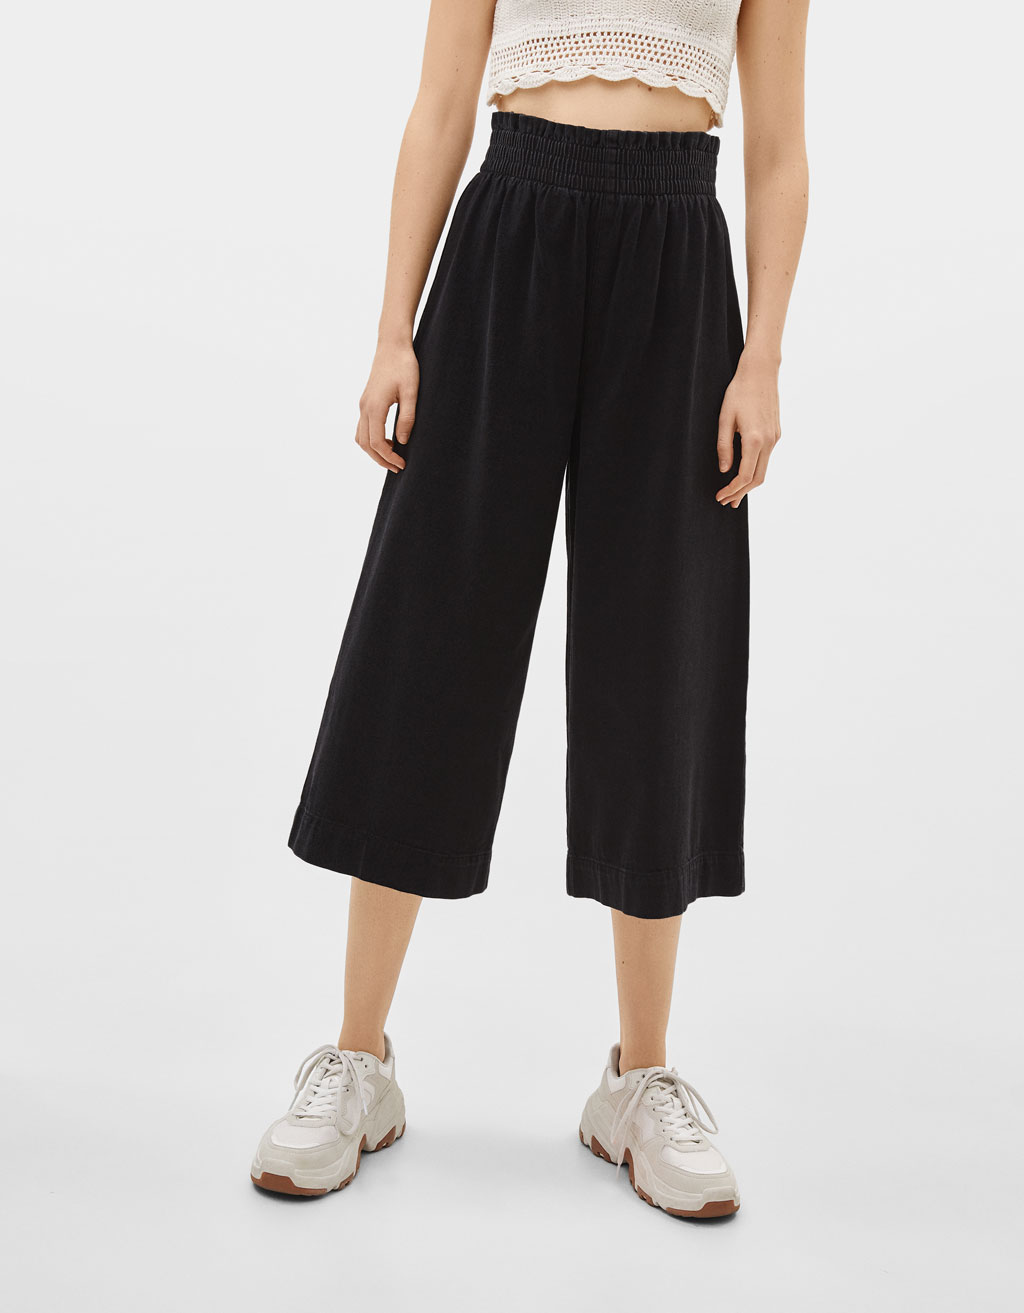 High waist denim culottes with elastic waistband